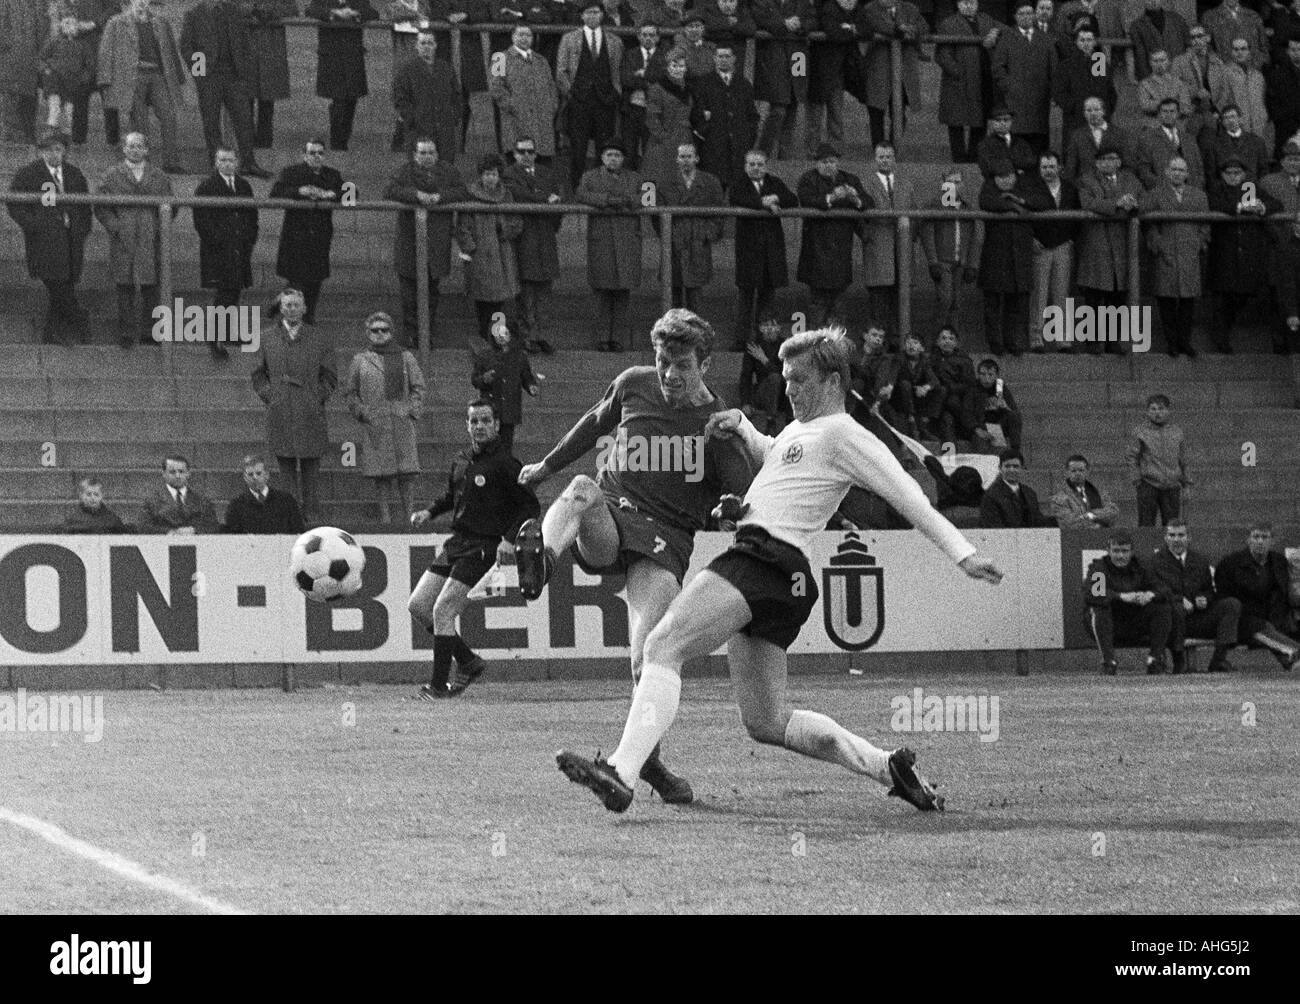 football, Bundesliga, 1968/1969, Borussia Moenchengladbach versus Eintracht Frankfurt 2:3, Boekelberg Stadium, scene of the match, duel between Herbert Wimmer (Gladbach) left and Lothar Schaemer (Frankfurt) - Stock Image